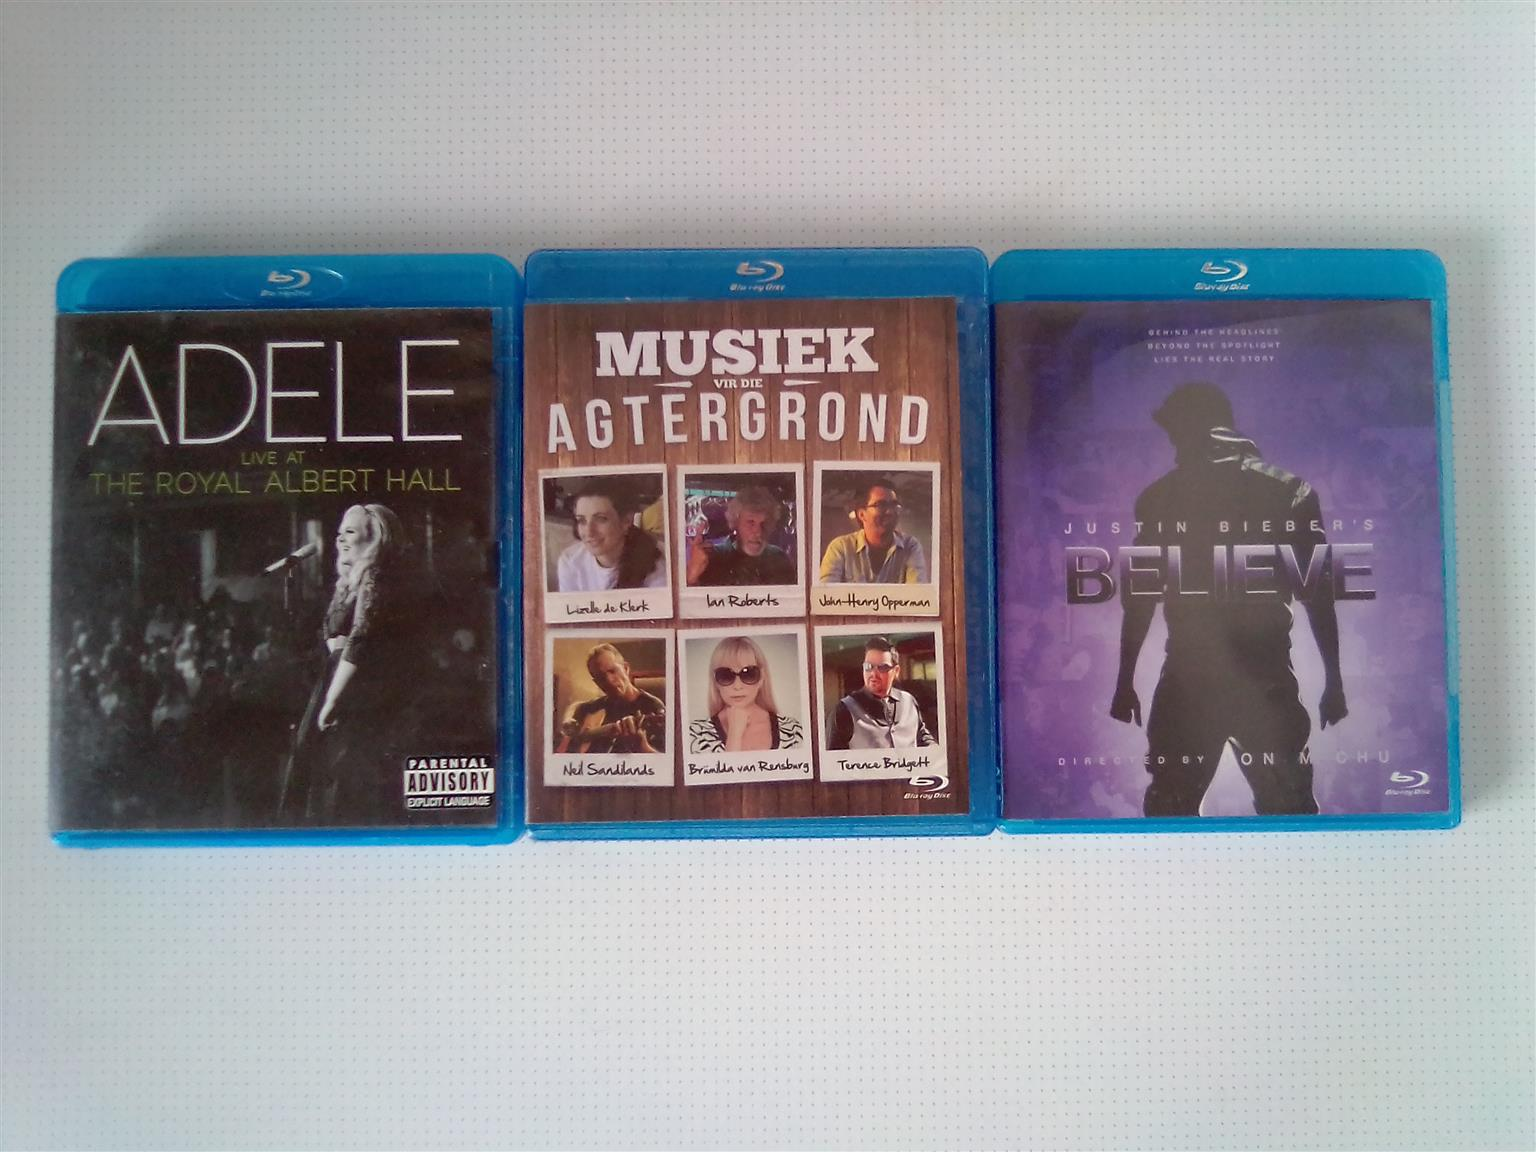 Blu-ray Music and Concert DVD. I am in Orange Grove.